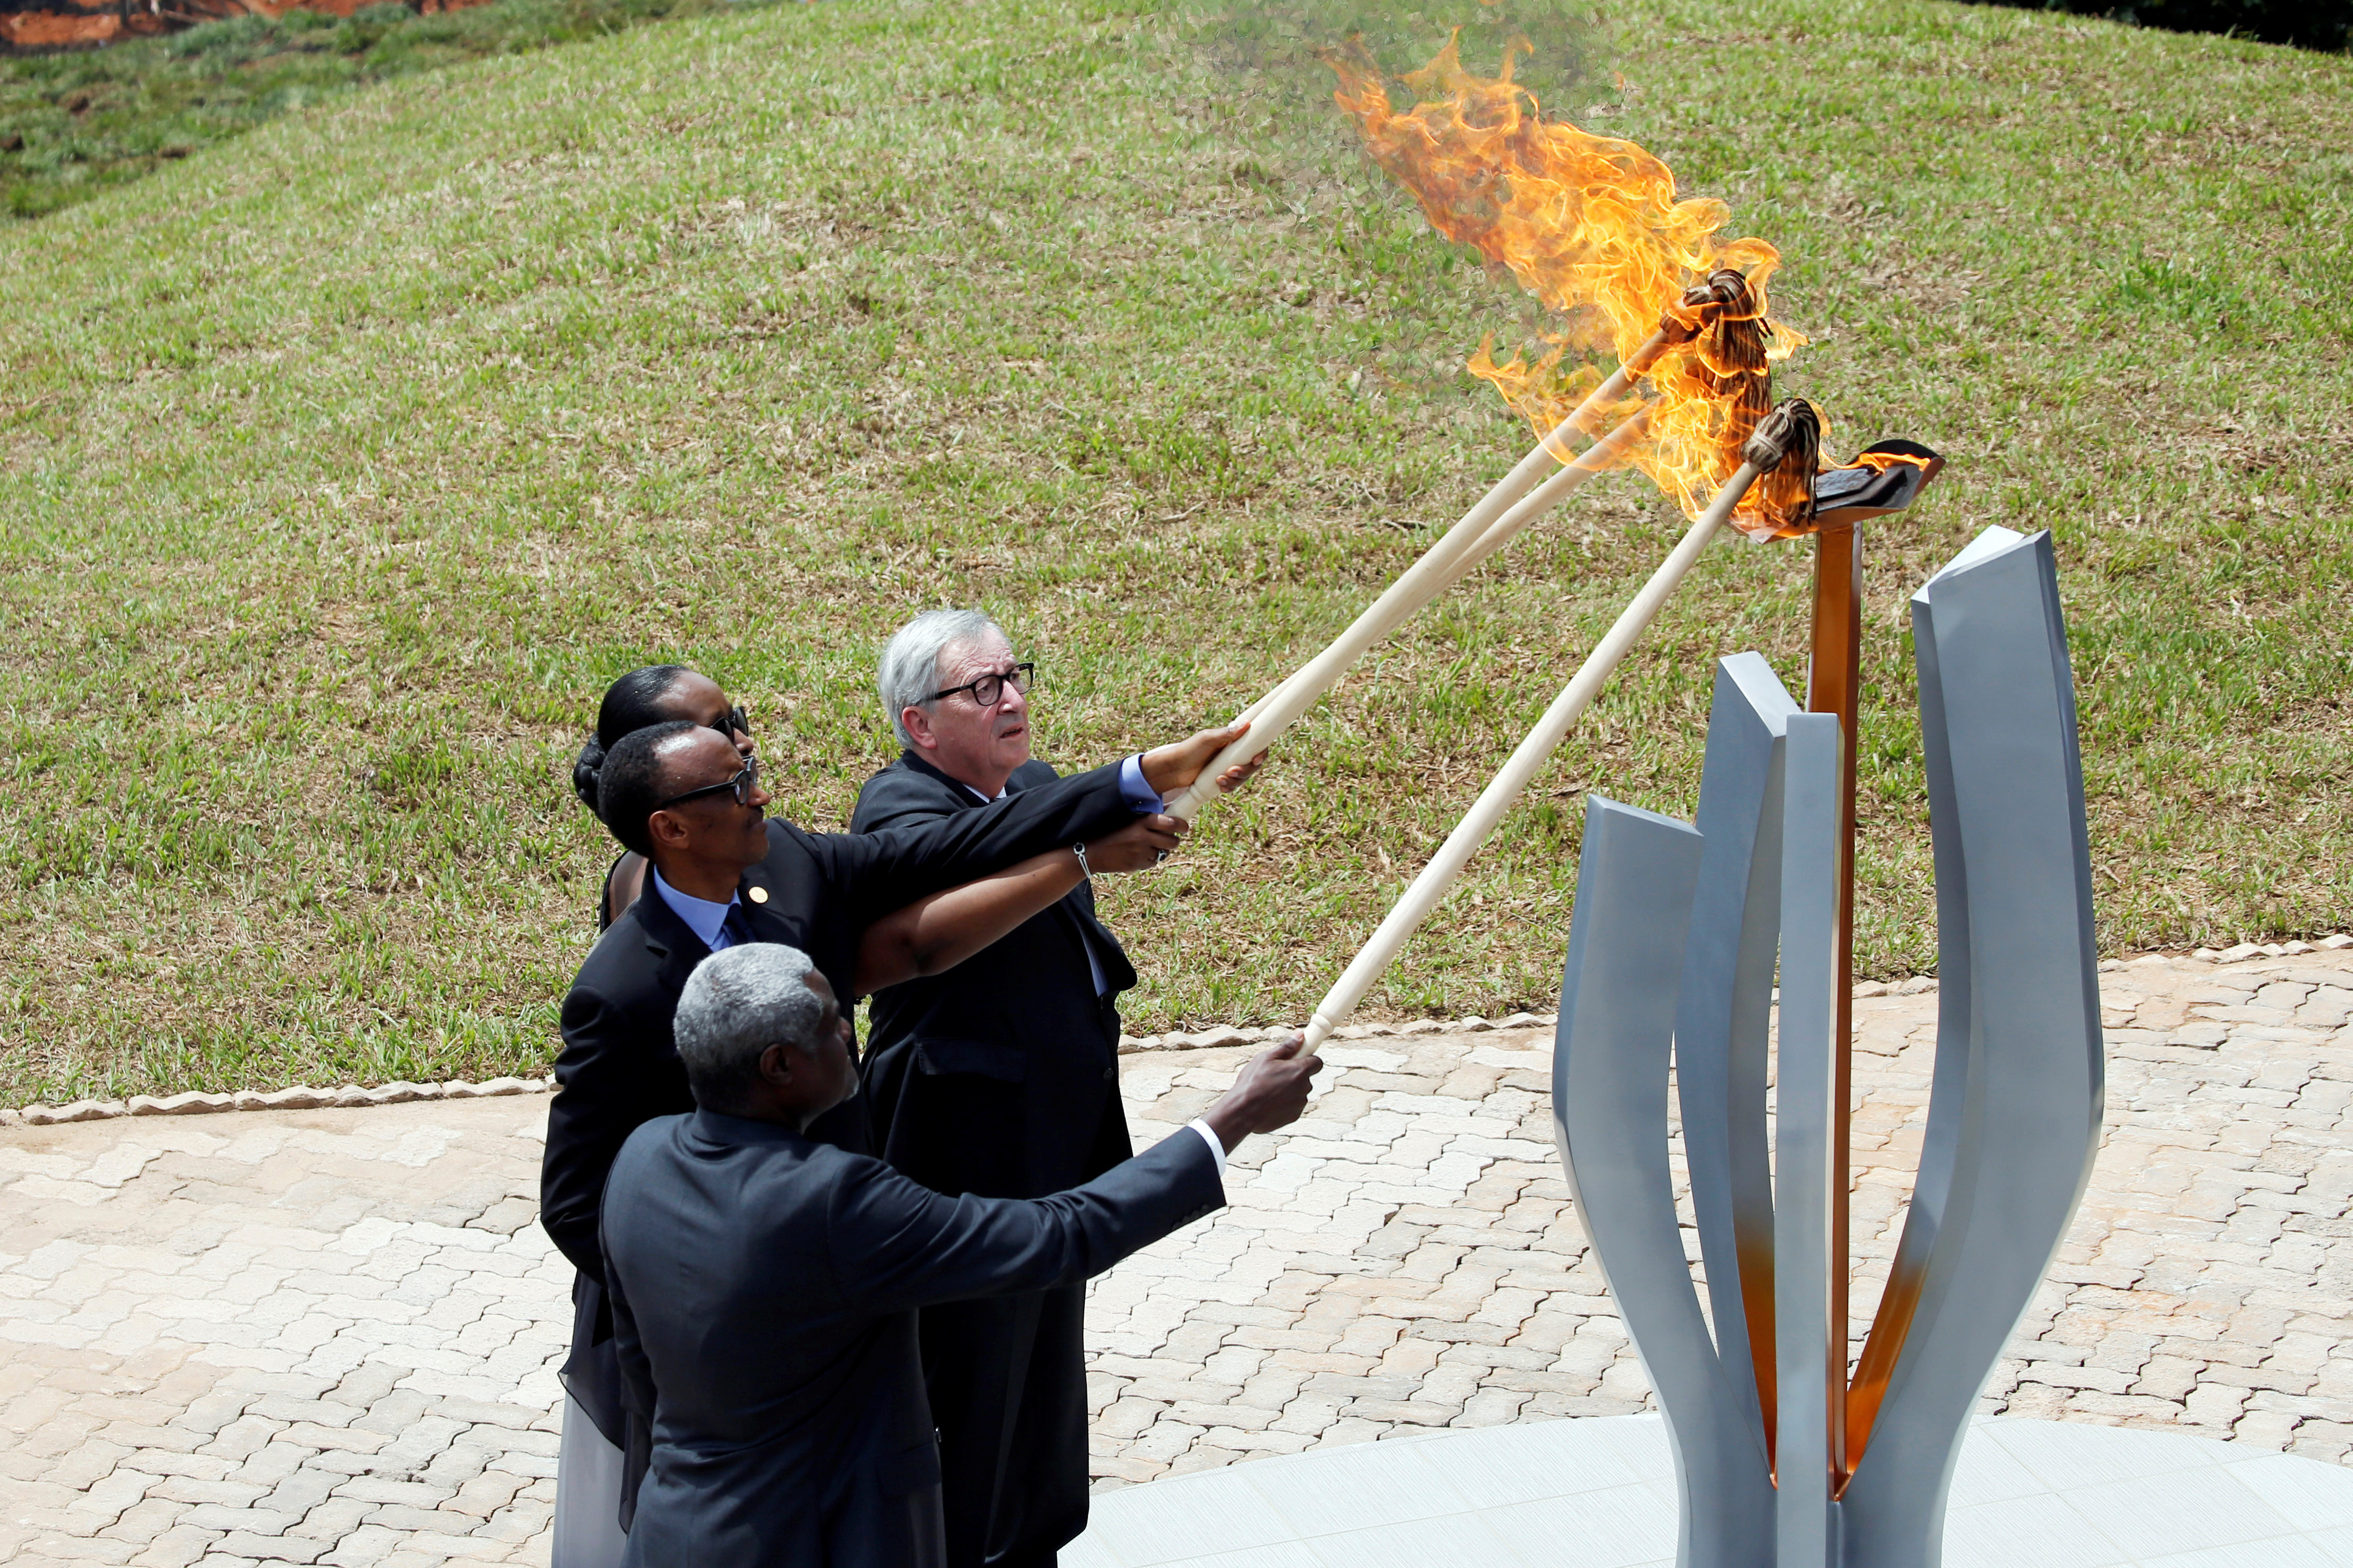 African Union Commission Chairperson Moussa Faki Mahamat, Rwandan President Paul Kagame, Jeannette Kagame and European Commission President Jean-Claude Juncker, light the flame of hope during a commemoration ceremony of the 25th anniversary of the genocide at the Genocide Memorial in Gisozi in Kigali, Rwanda